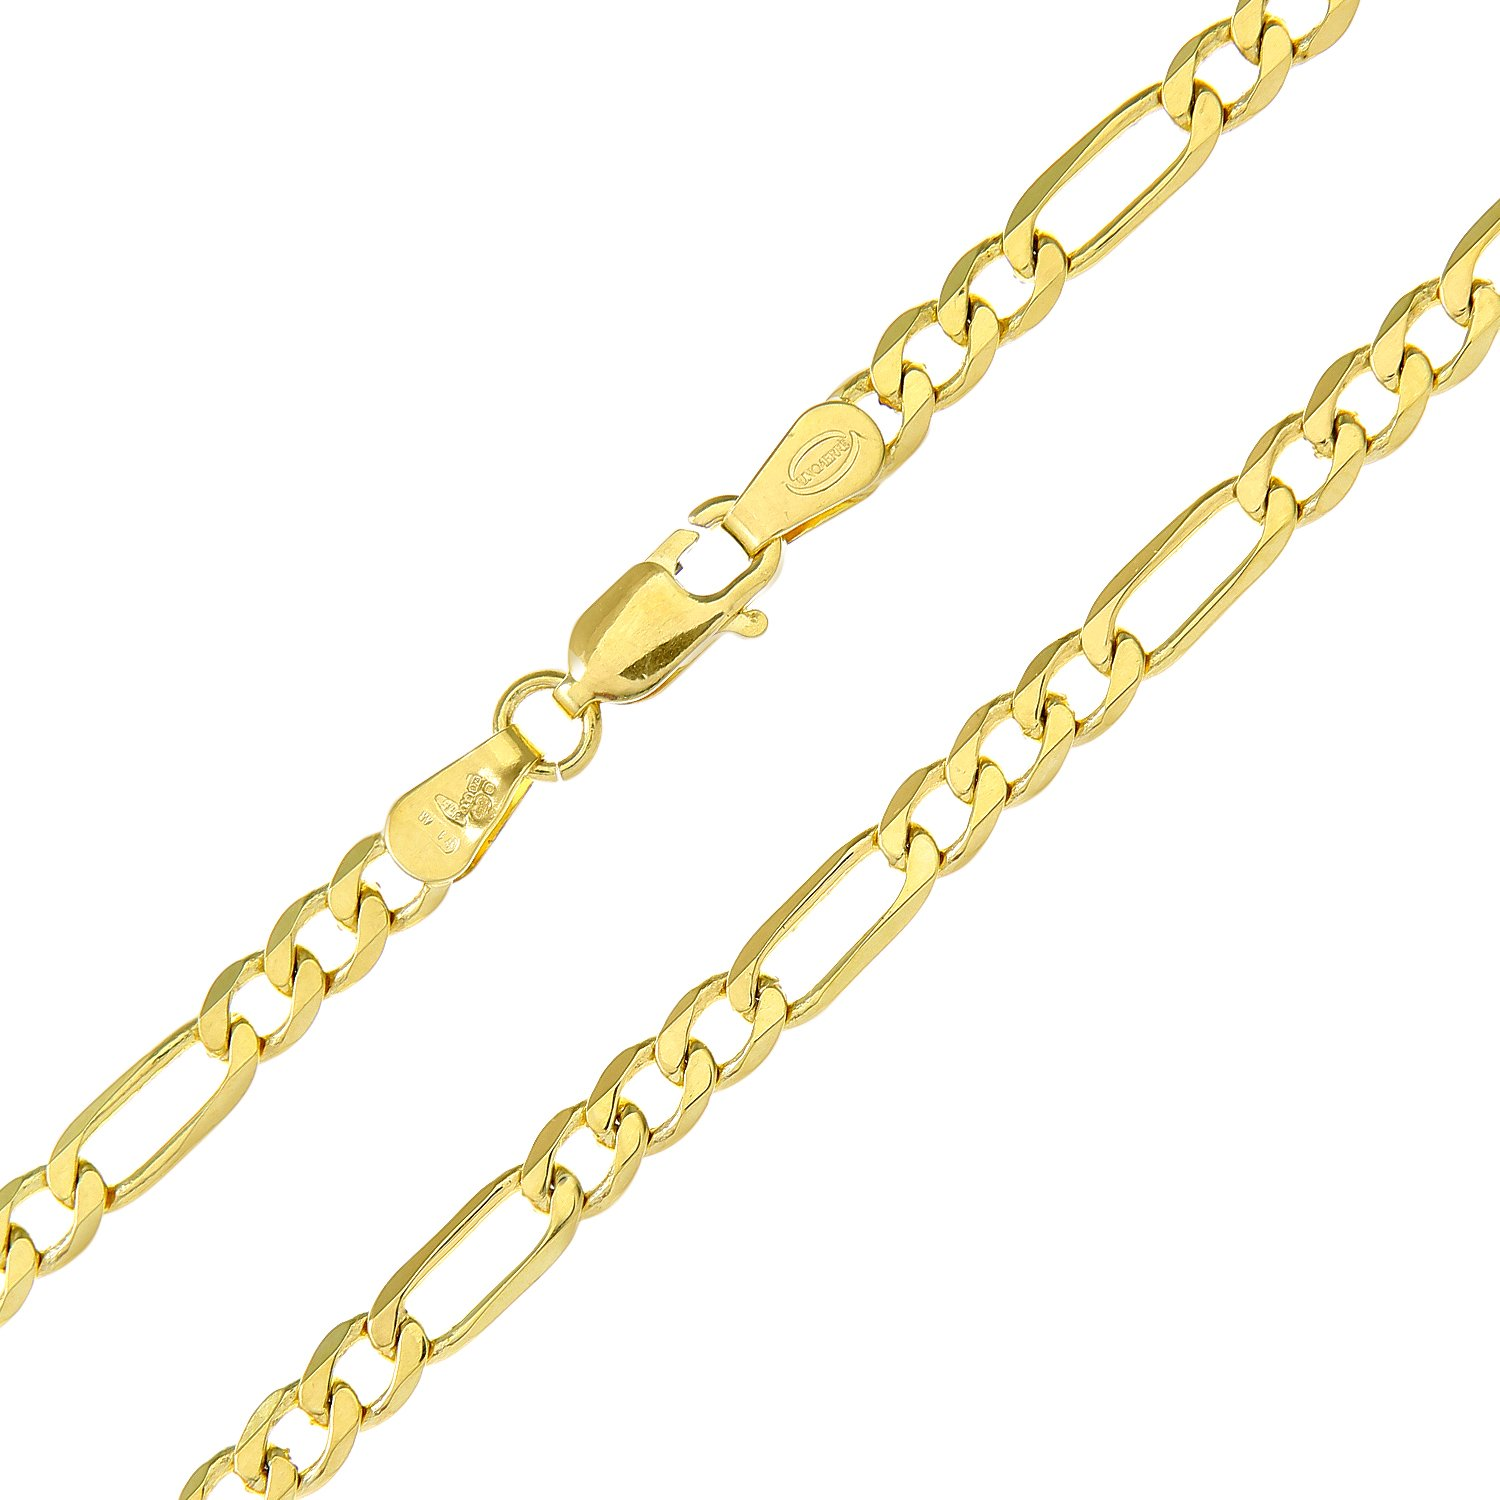 Persevering 9ct White Gold & 9ct Yellow Gold Bracelet 100% Guarantee Fine Necklaces & Pendants